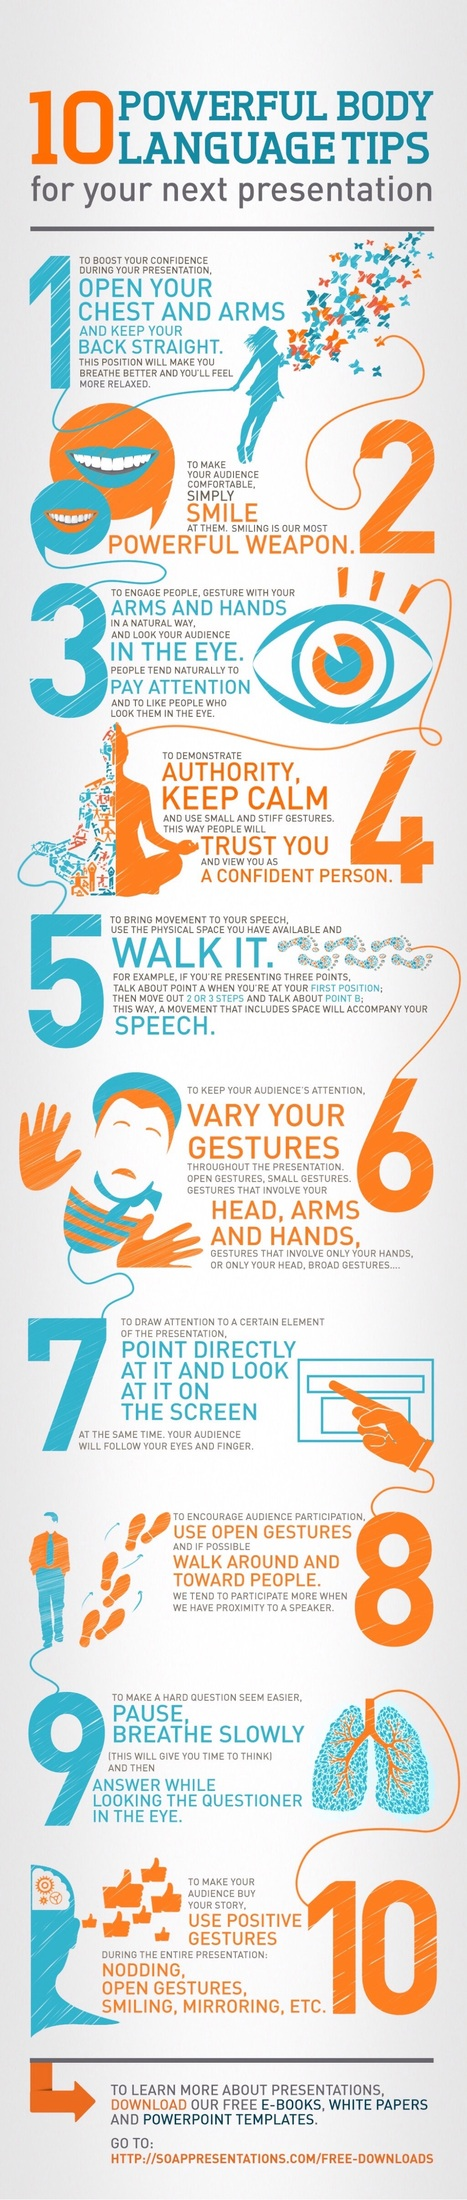 Excellent Graphic Feauring 10 Powerful Body Language Tips Teachers Should Know ~ Educational Technology and Mobile Learning | Educational Psychology | Scoop.it